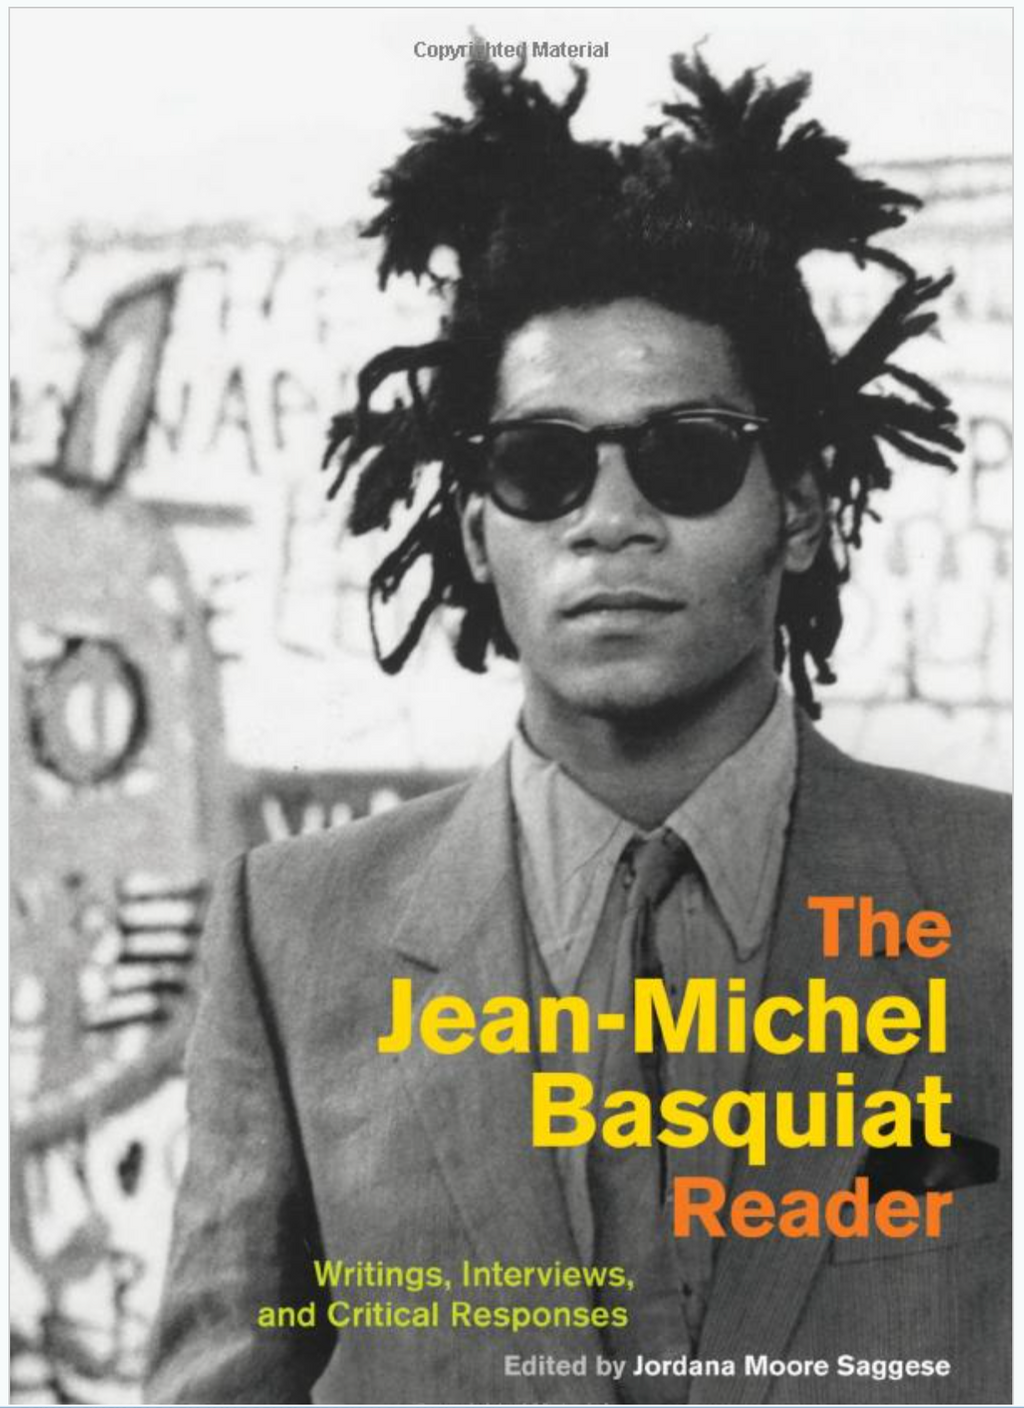 The Jean-Michell Basquiat Reader